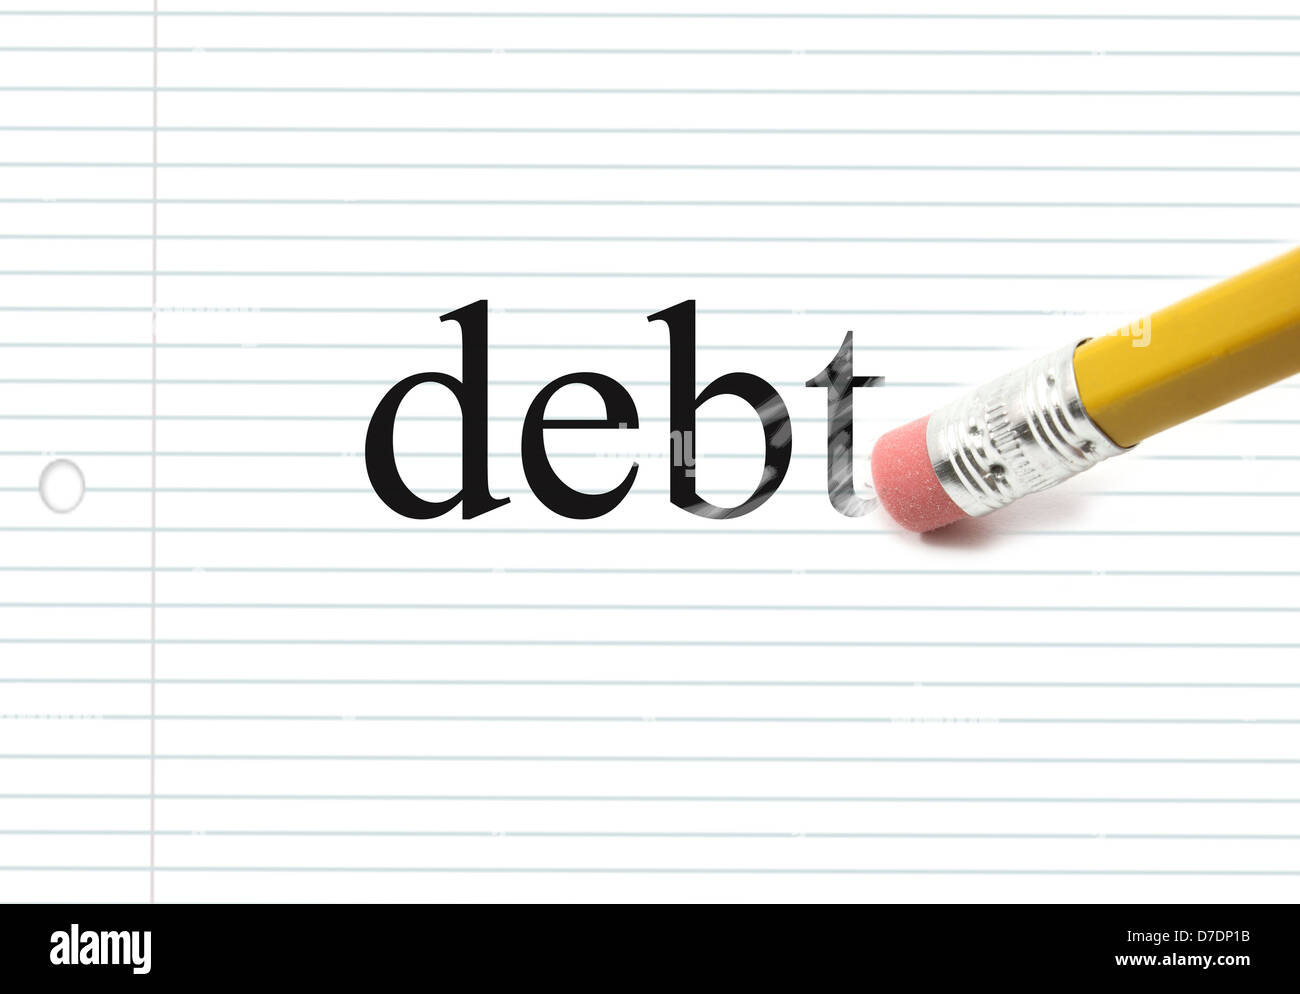 The word debt written on notebook paper with the end of a pencil erasing the black letters showing eraser marks - Stock Image